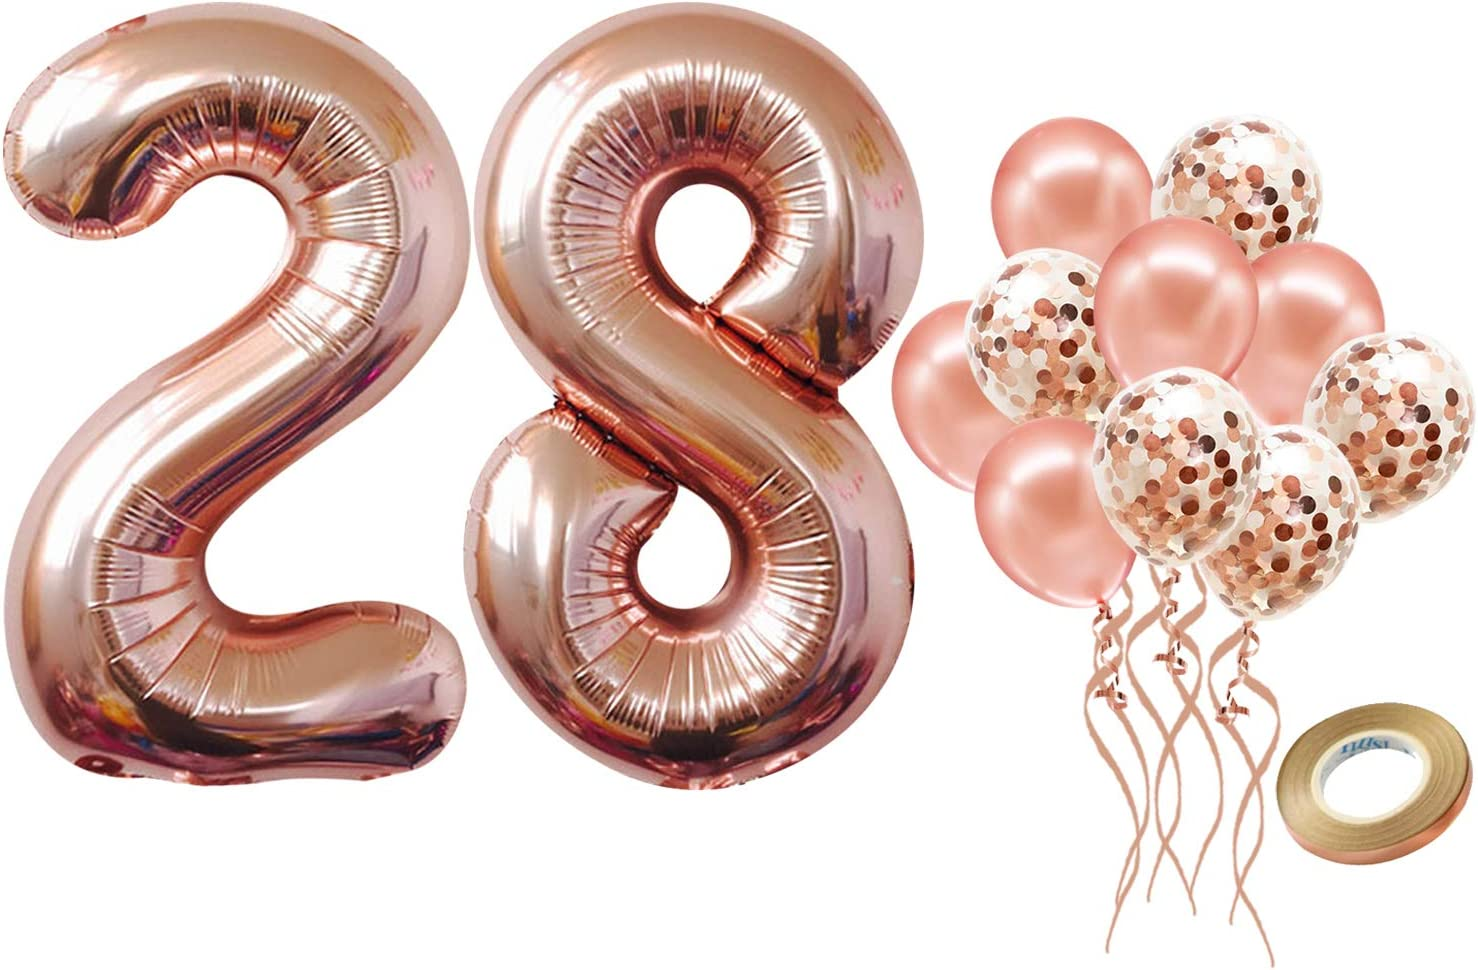 Rose Gold 28th Birthday Balloons Party Decorations Set - Large 40 inch | Rose Gold Confetti Balloons | 28 Balloon Number for 28 Birthday Party Decorations | 28th Birthday Decorations for Women and Men